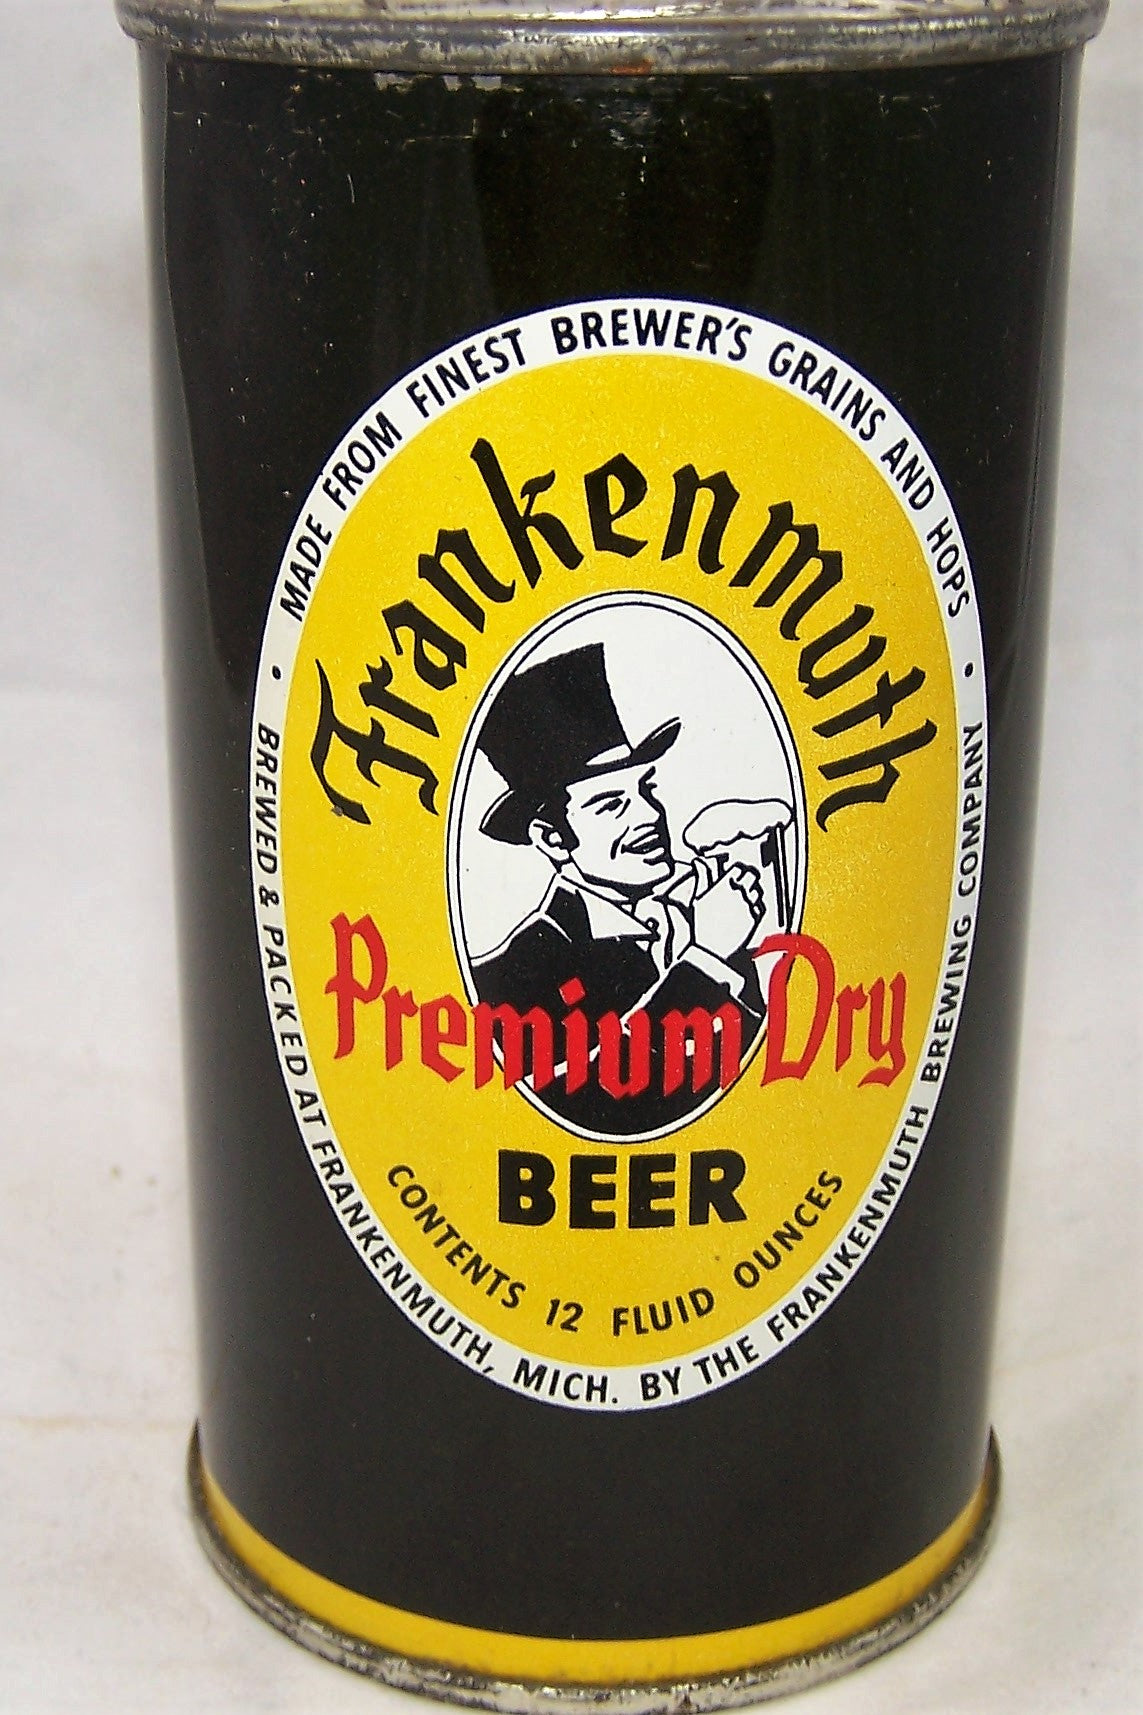 Frankenmuth Premium Dry Beer, USBC 66-27, Grade 1/1+ Sold on 03/09/19